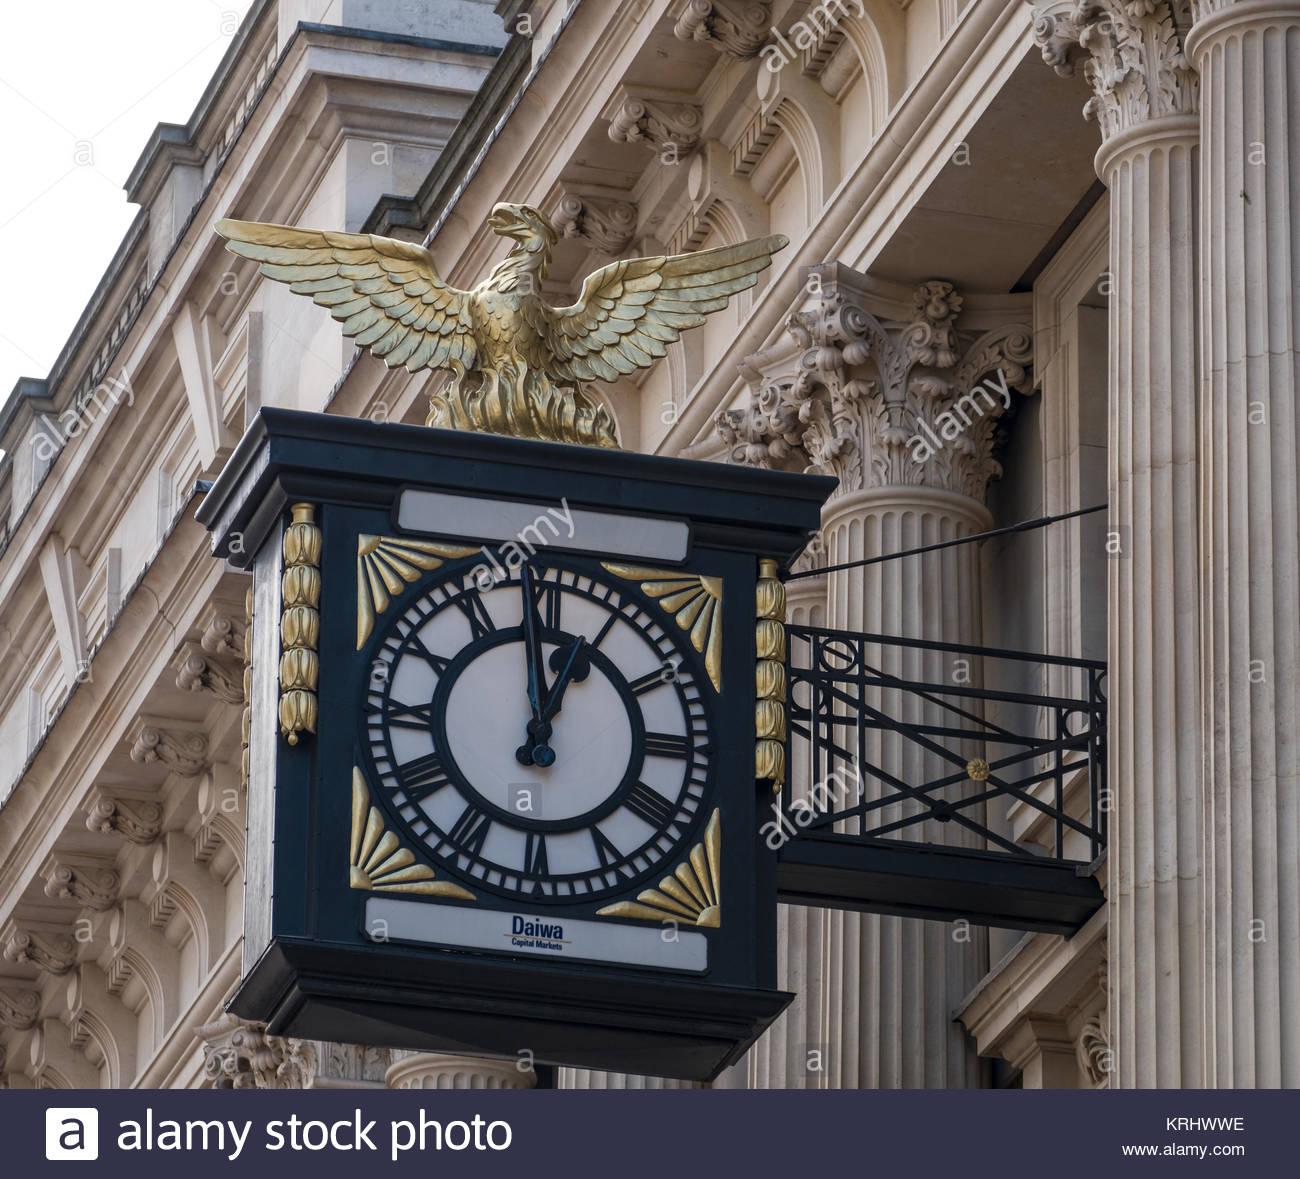 Gilded phoenix sculpture a symbol of the City of London on analog clock, King William Street, City of London, London, Stock Photo